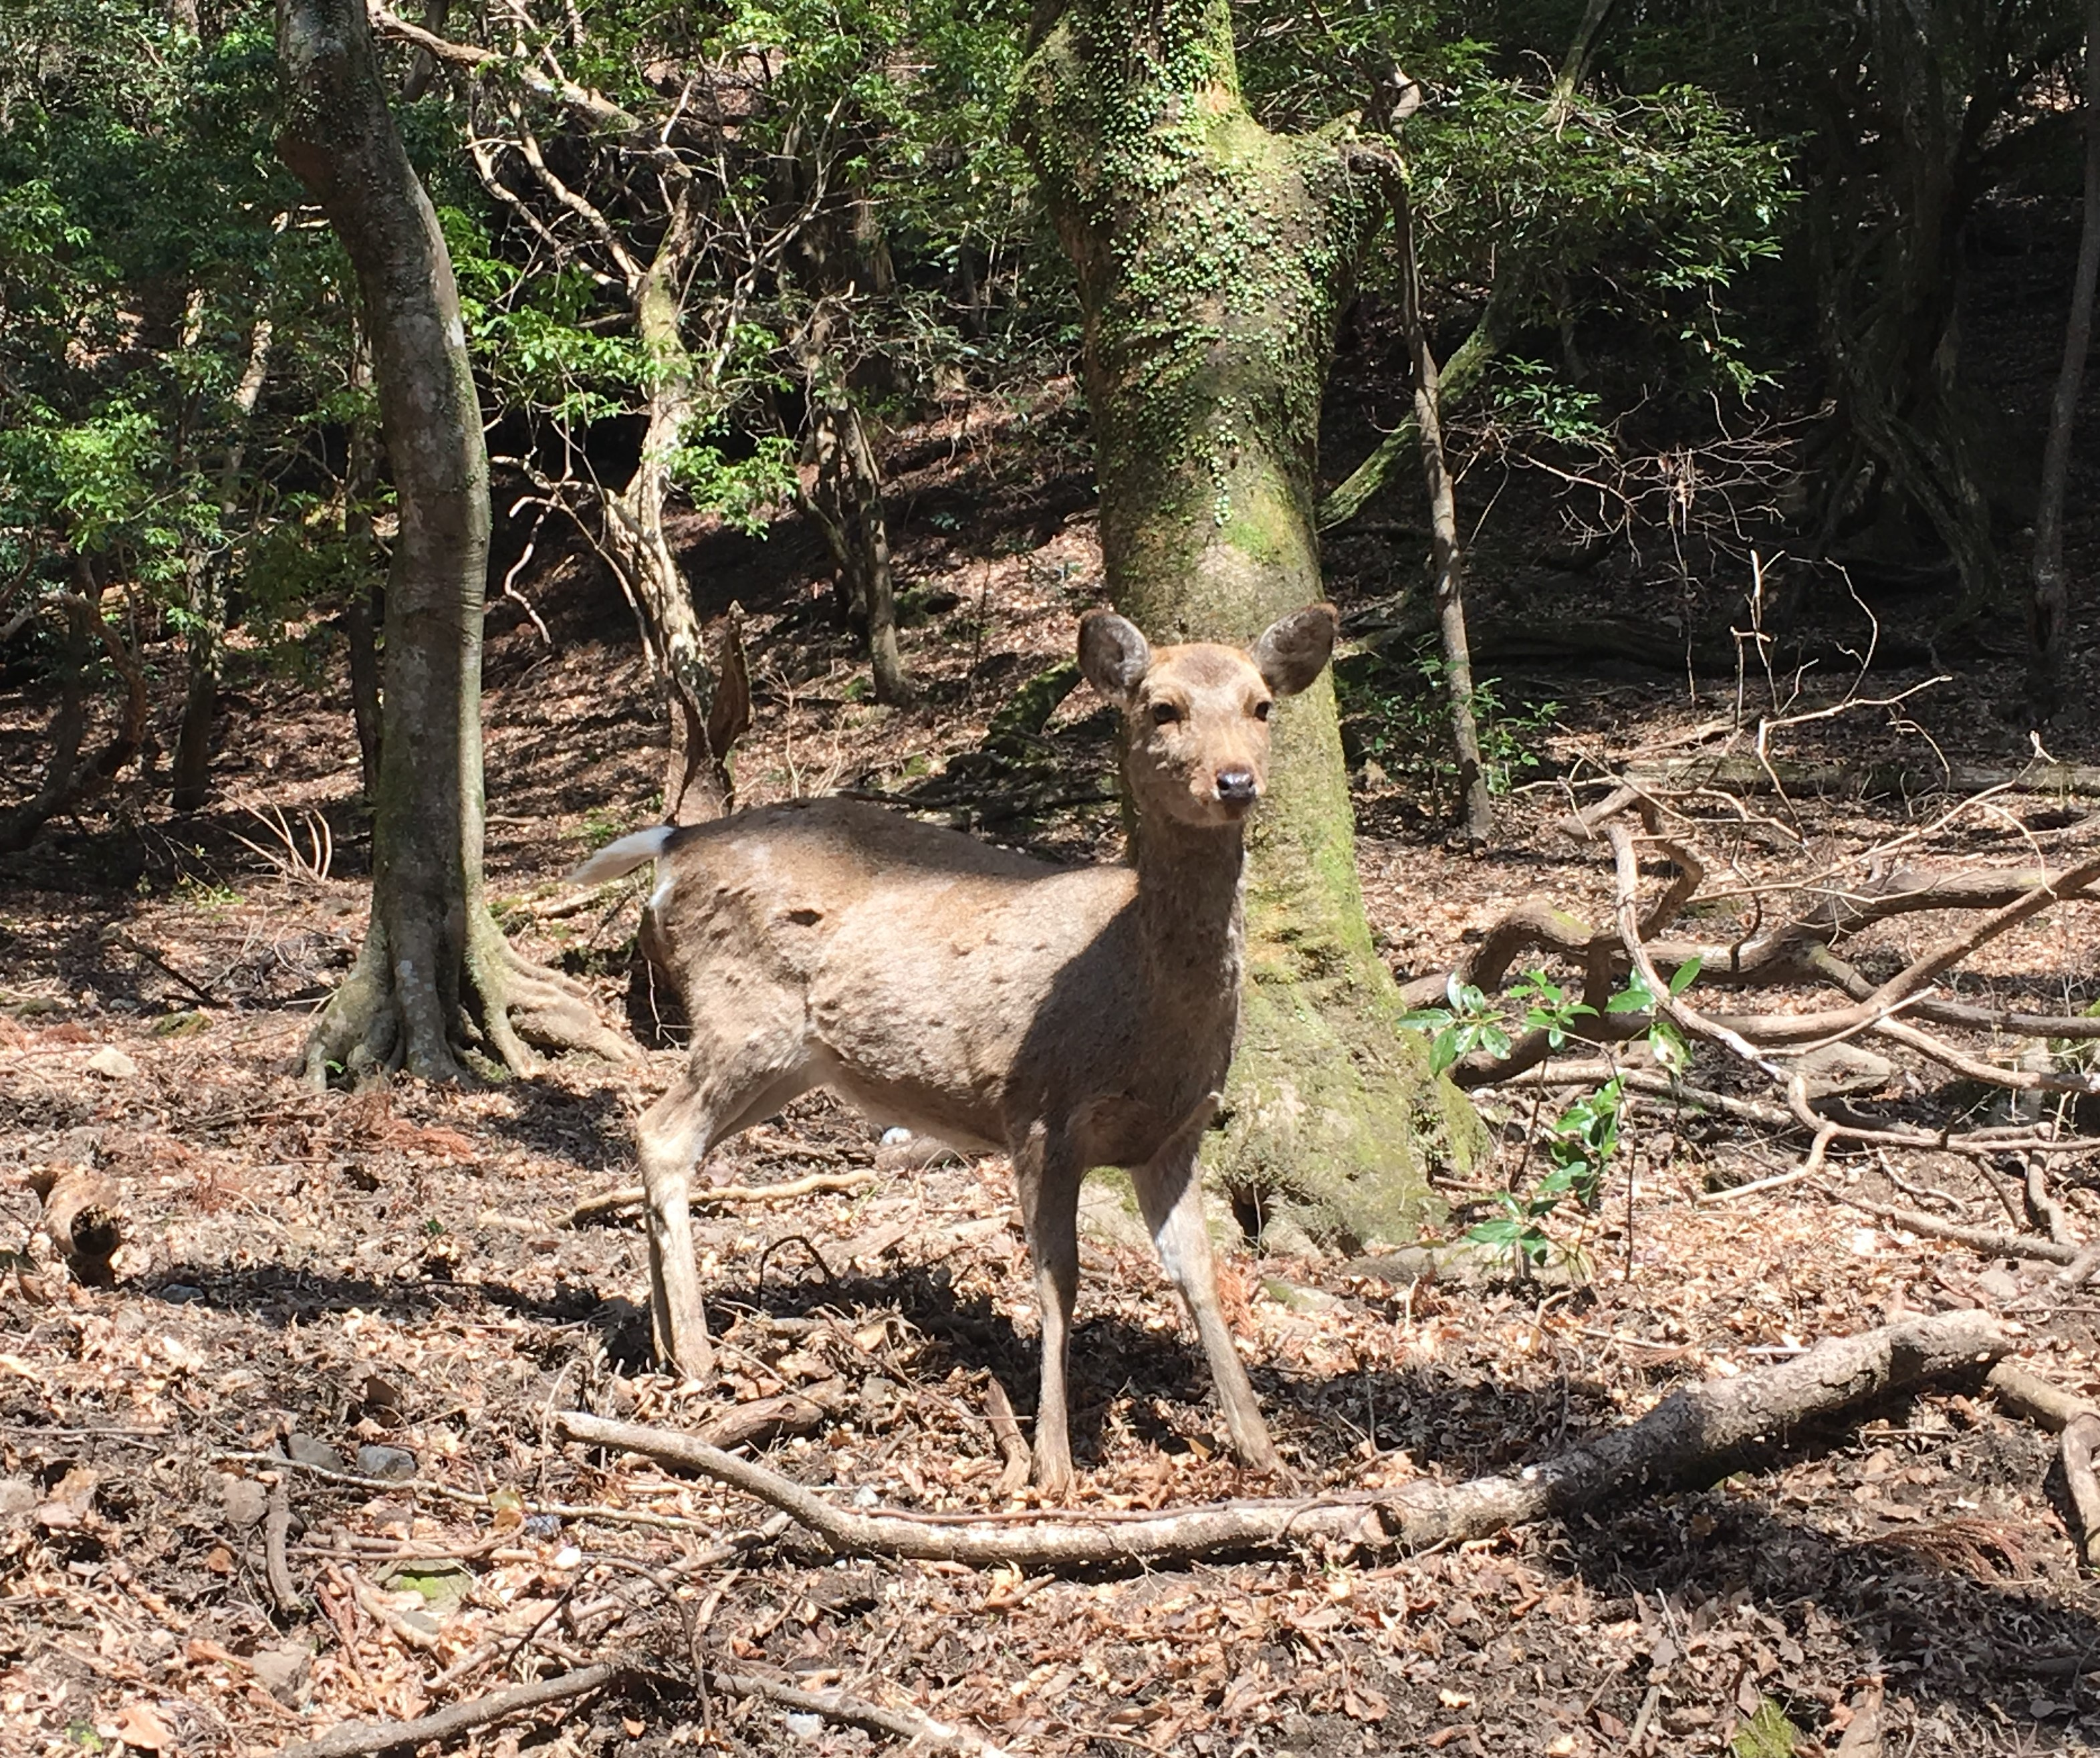 alert deer standing between trees with branches at its feet and lots of leaf litter